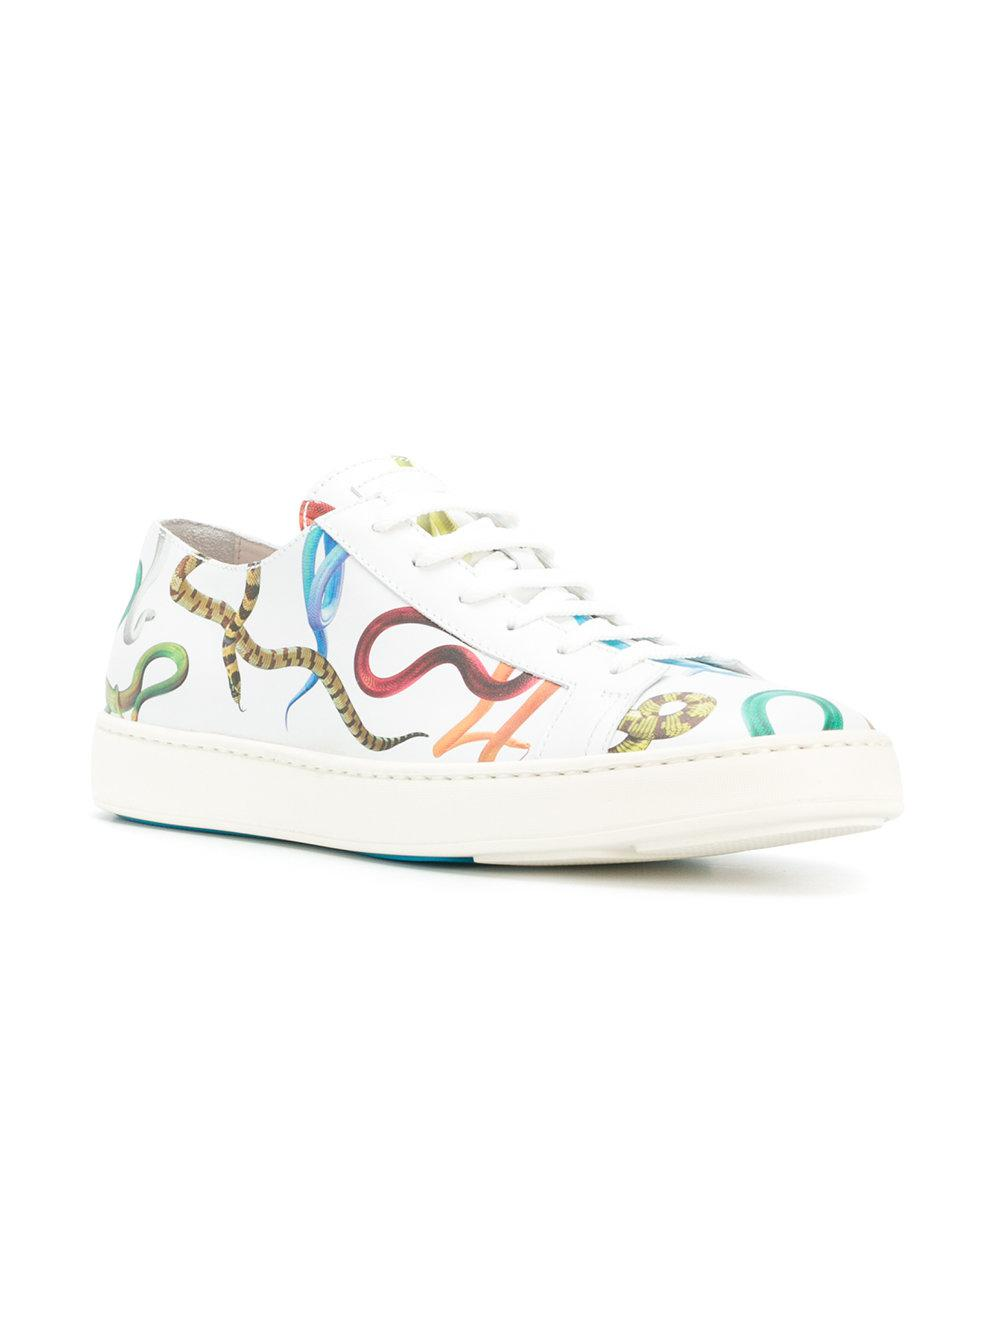 snake print lace-up sneakers - White Santoni Buy Cheap Clearance AypDnEgc